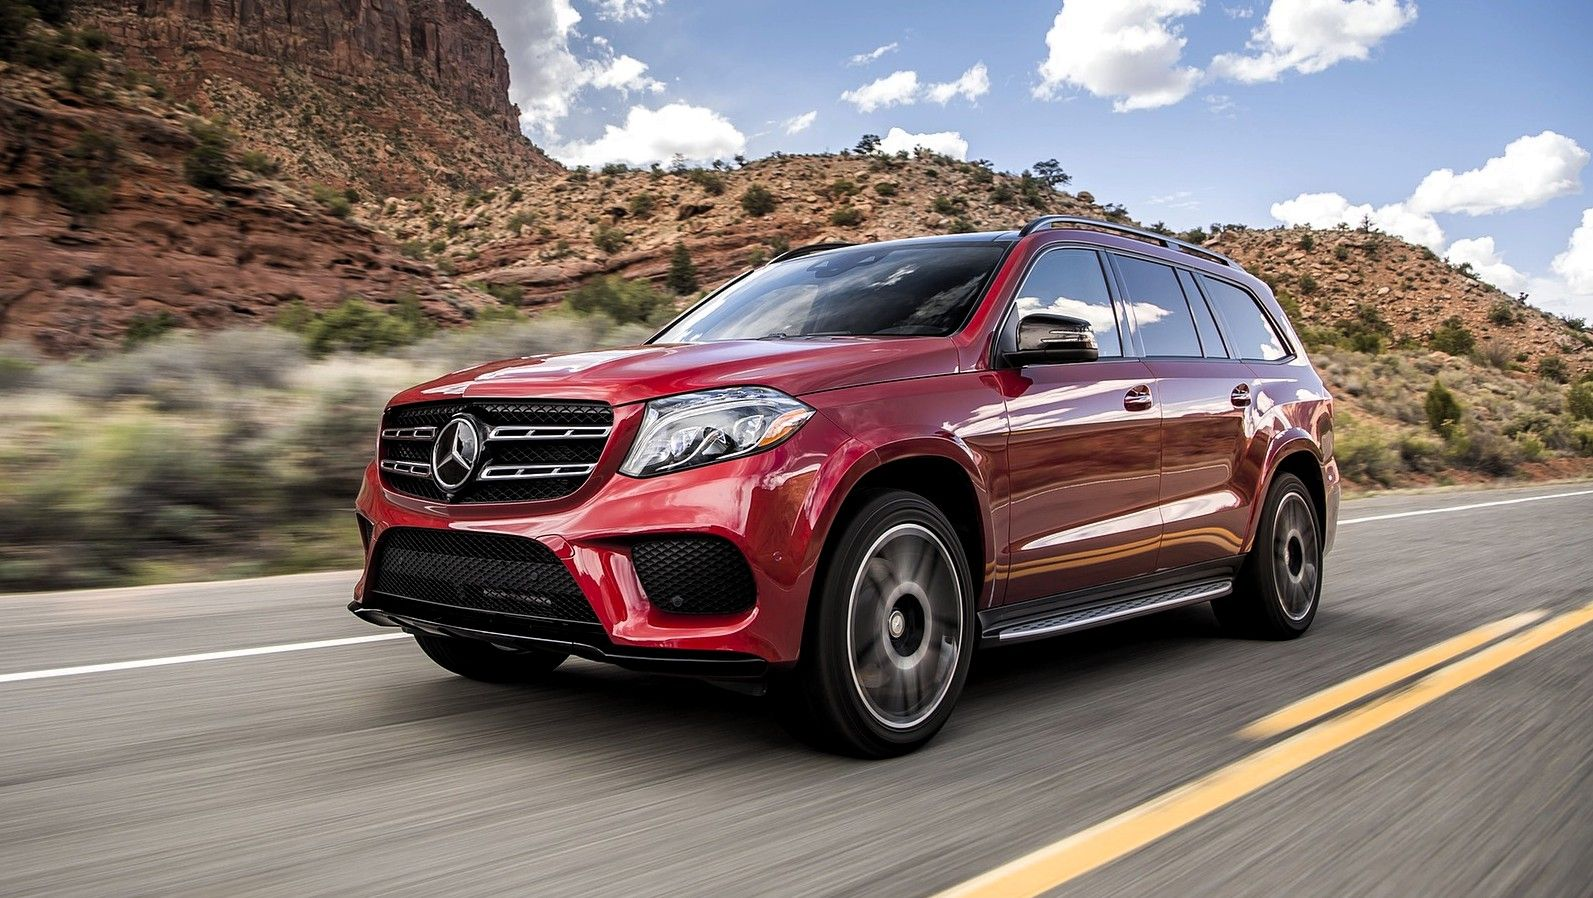 2019 Mercedes Benz GLS Class front three quarters red